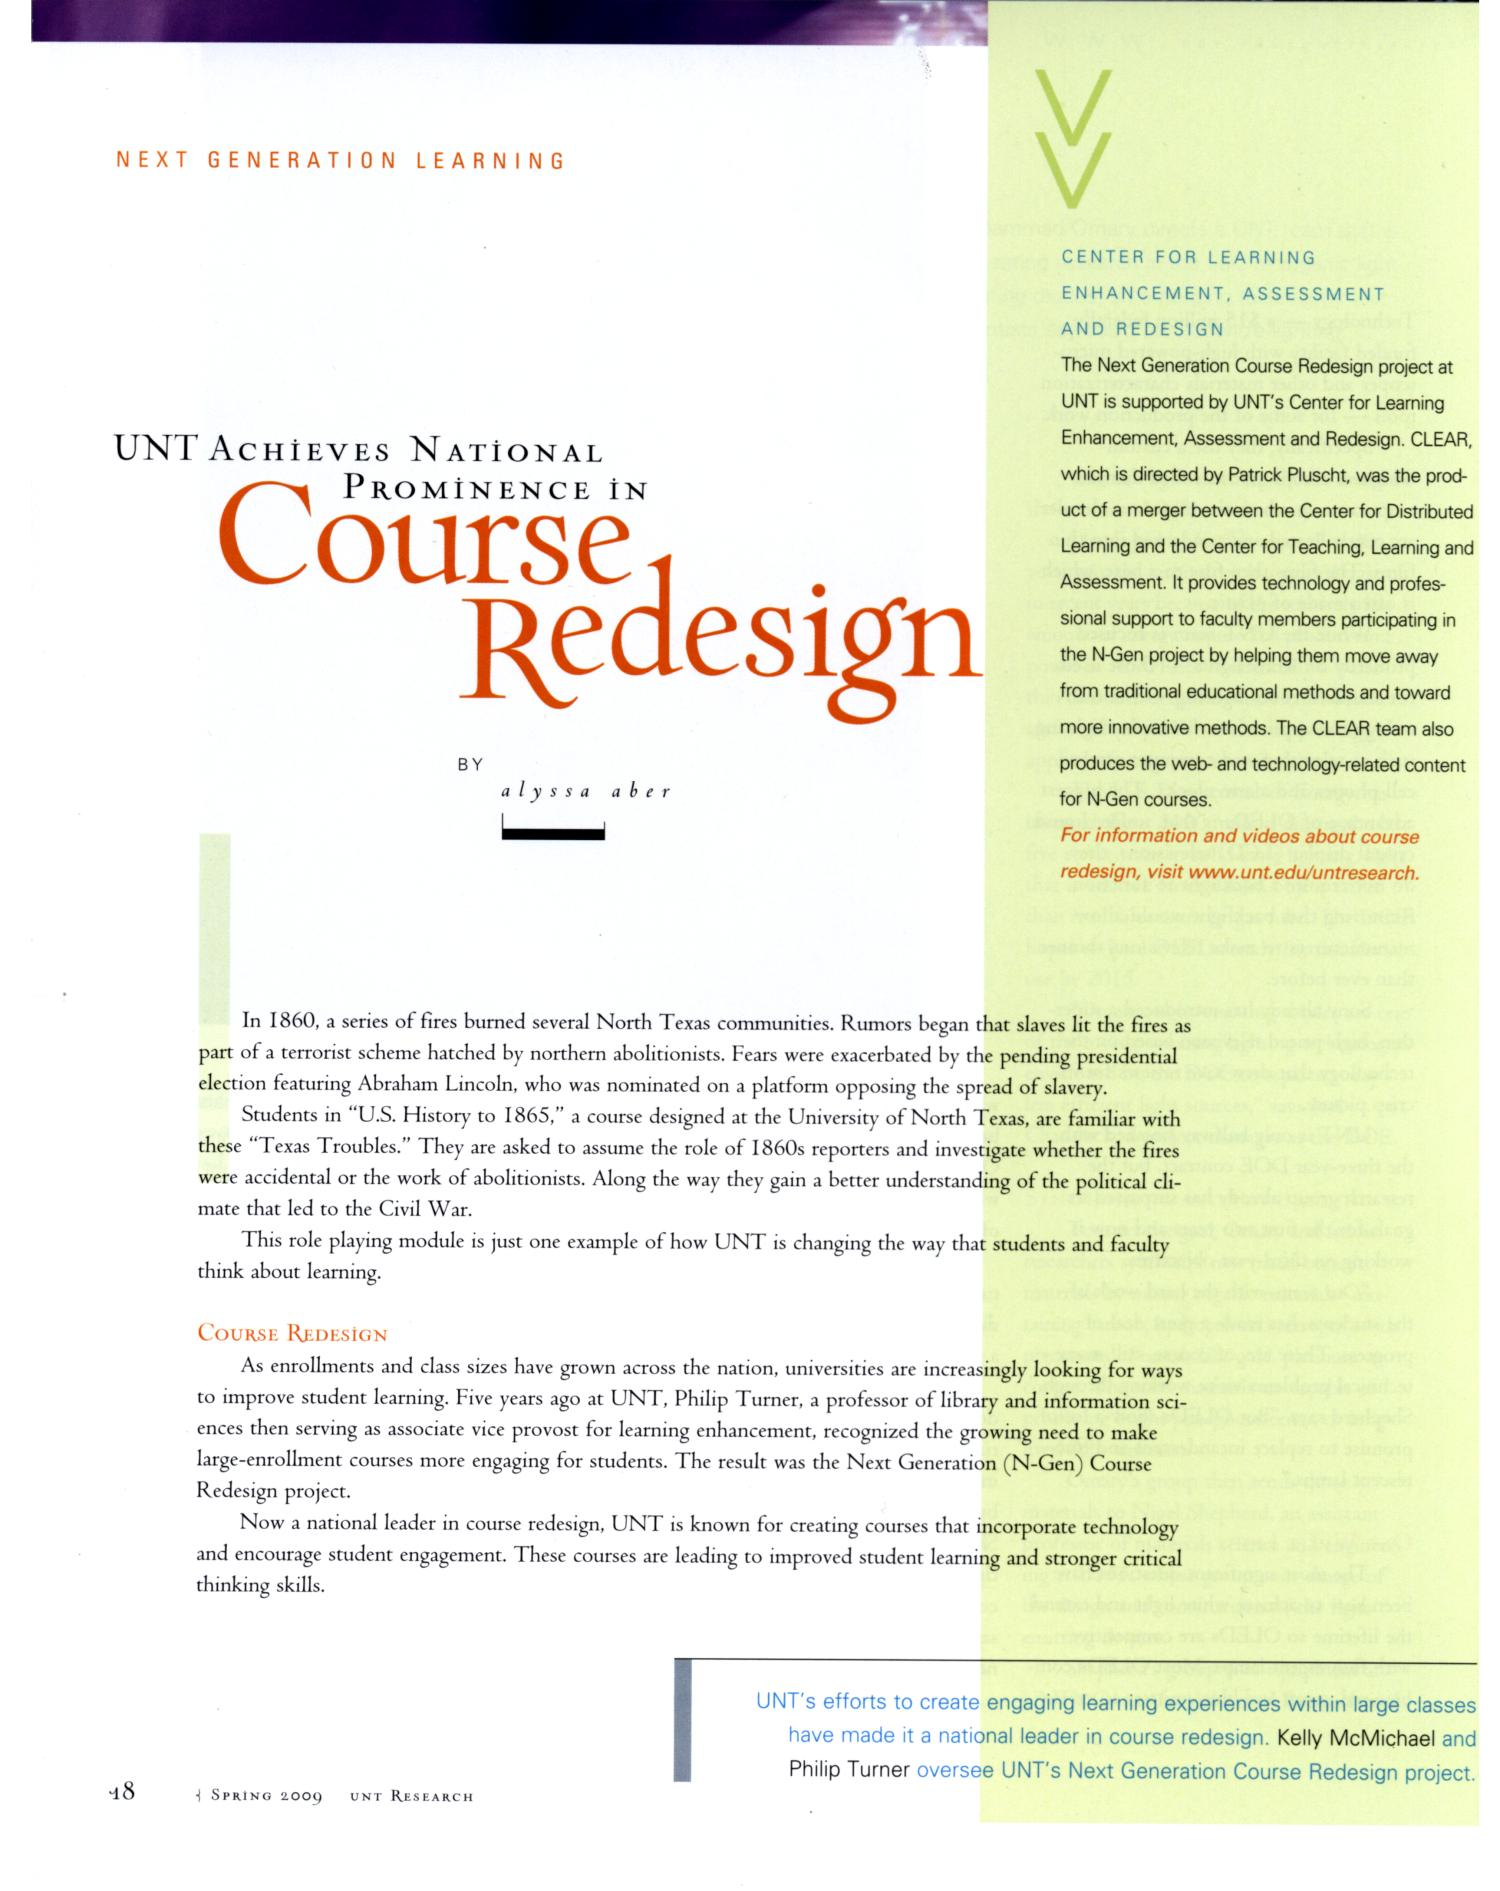 UNT Research, Volume 18, 2009                                                                                                      18